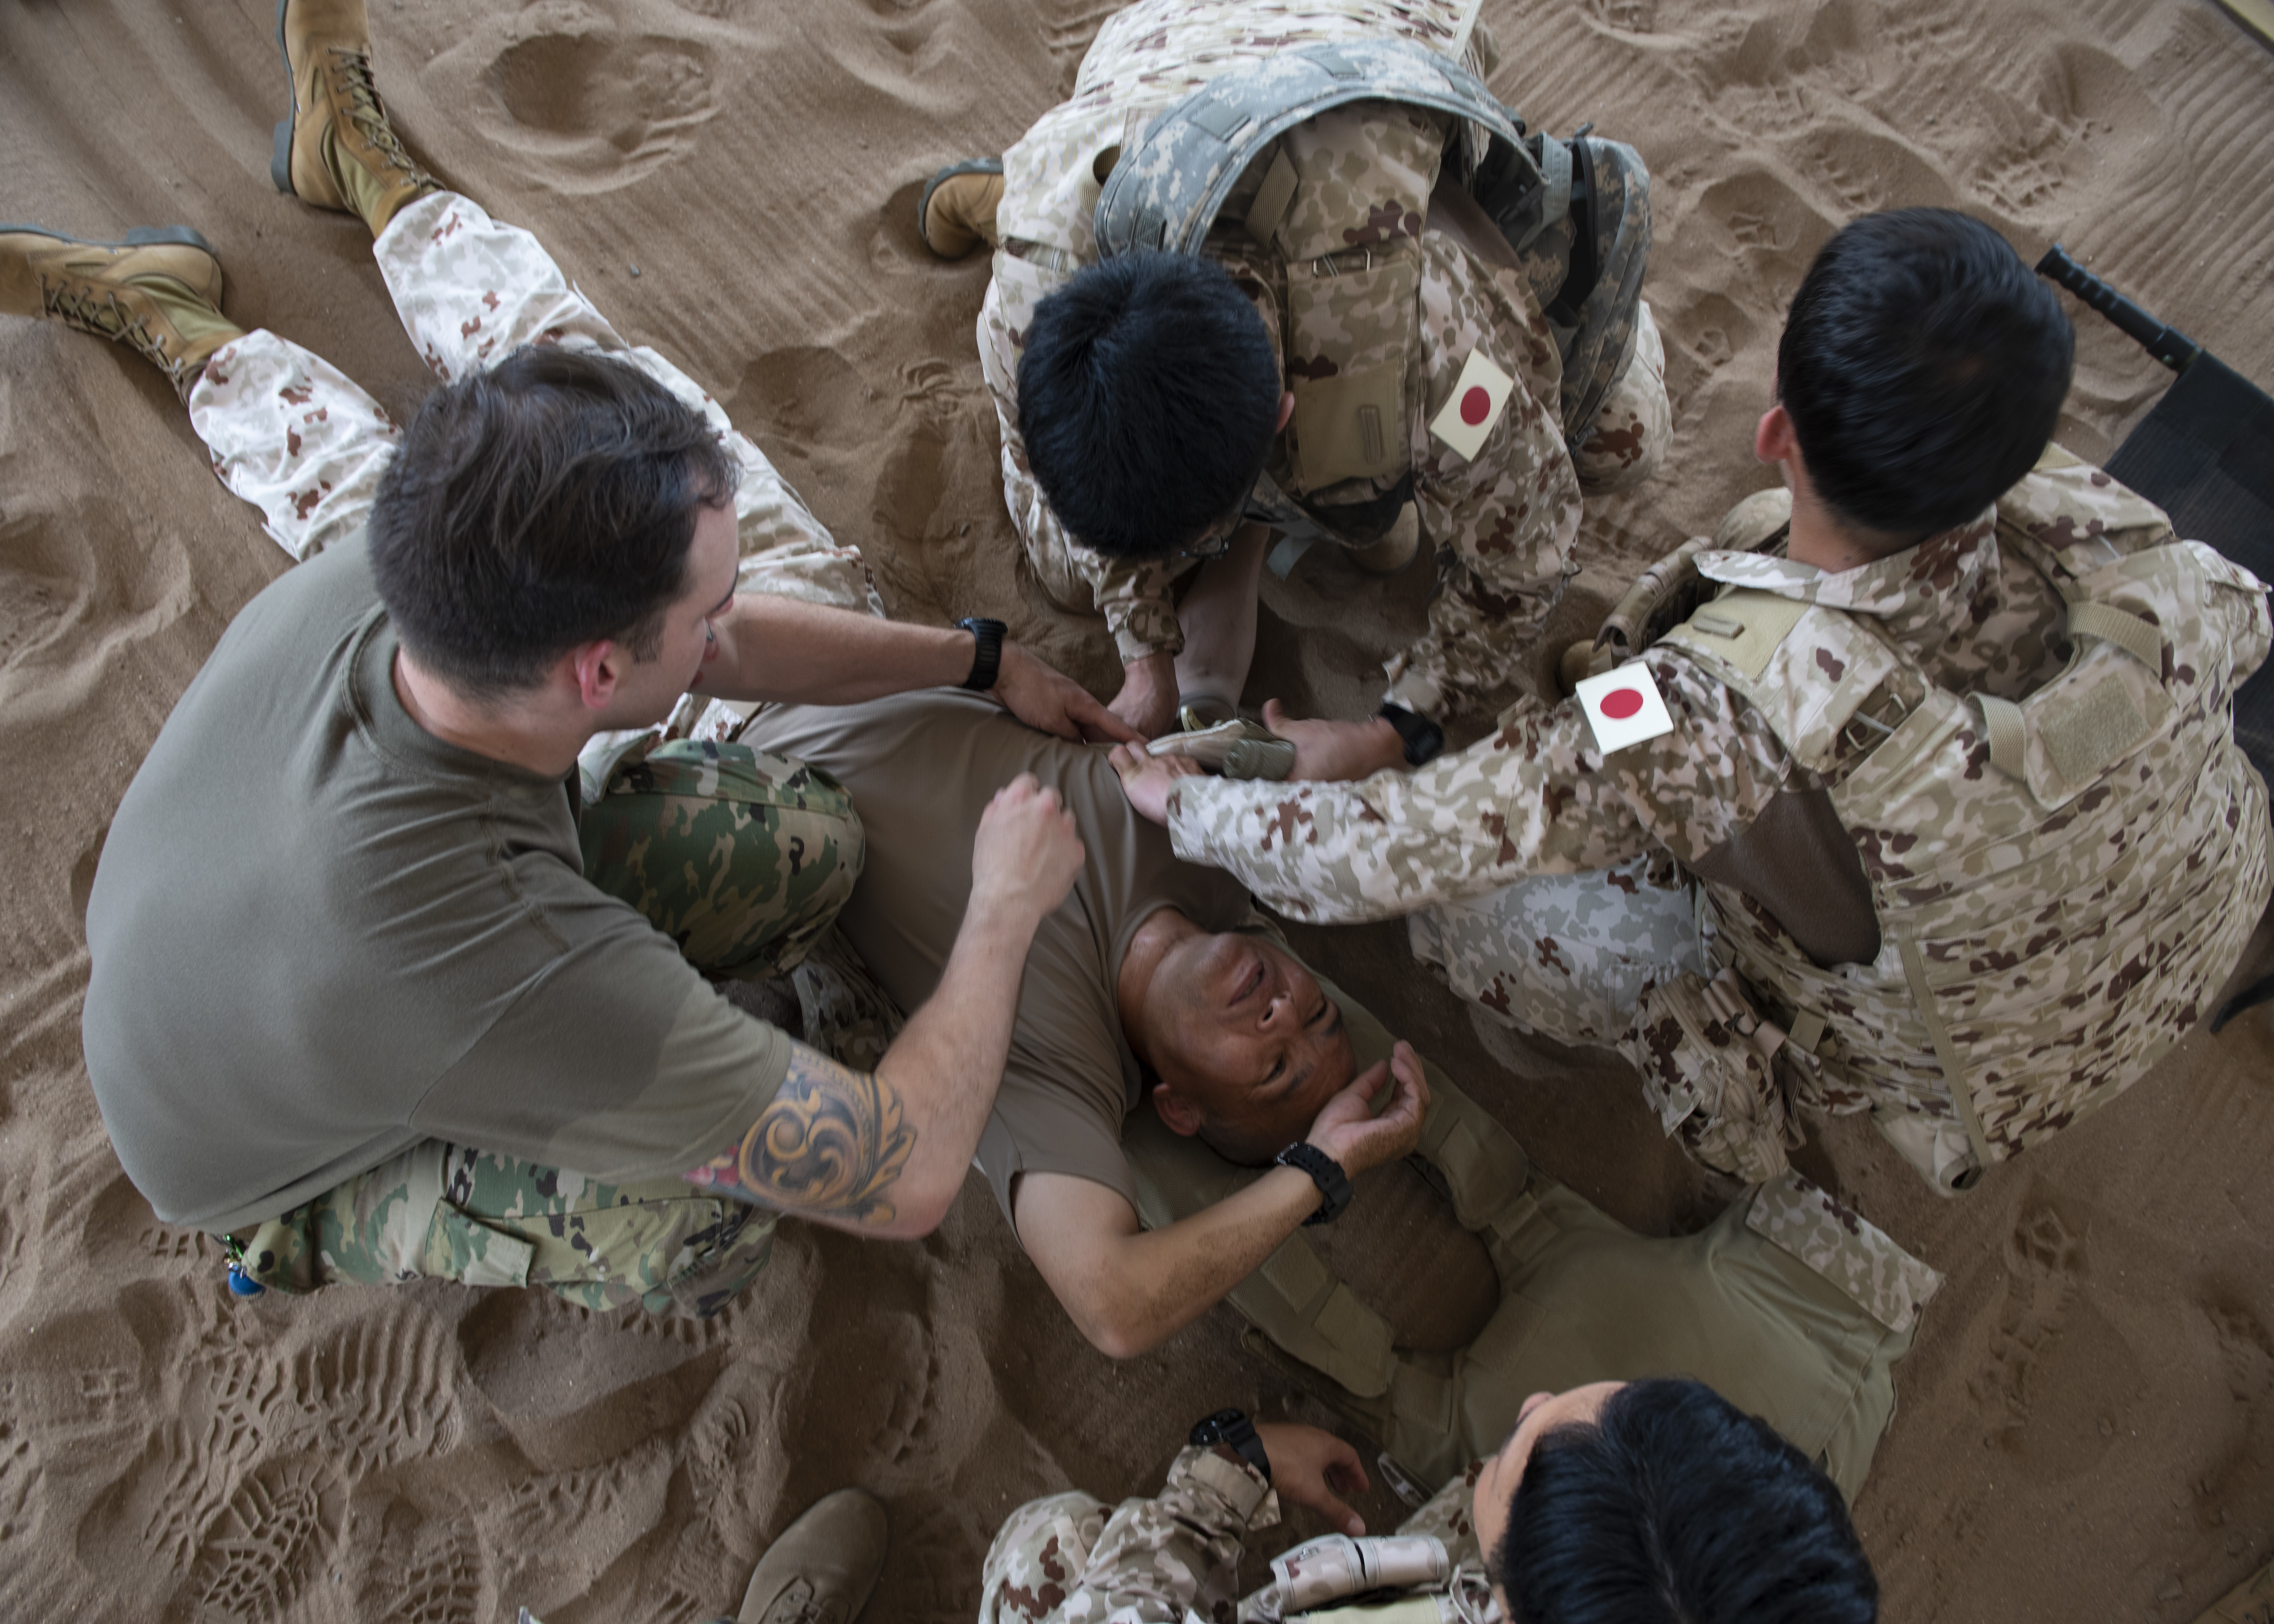 U.S. Army Sgt. Barrey Paddock, senior medic for Delta Company, 403rd Civil Affairs Battalion, assigned to Combined Joint Task Force-Horn of Africa, and Japanese Ground Self-Defense Force soldiers treat a victim during a tactical combat casualty care (TCCC) medical exchange at Camp Lemonnier, Djibouti, June 3, 2019. TCCC provided partner nation Soldiers an opportunity to share different methods on how to conduct life-saving medical care on a battlefield. (U.S. Air Force photo by Staff Sgt. Franklin R. Ramos)